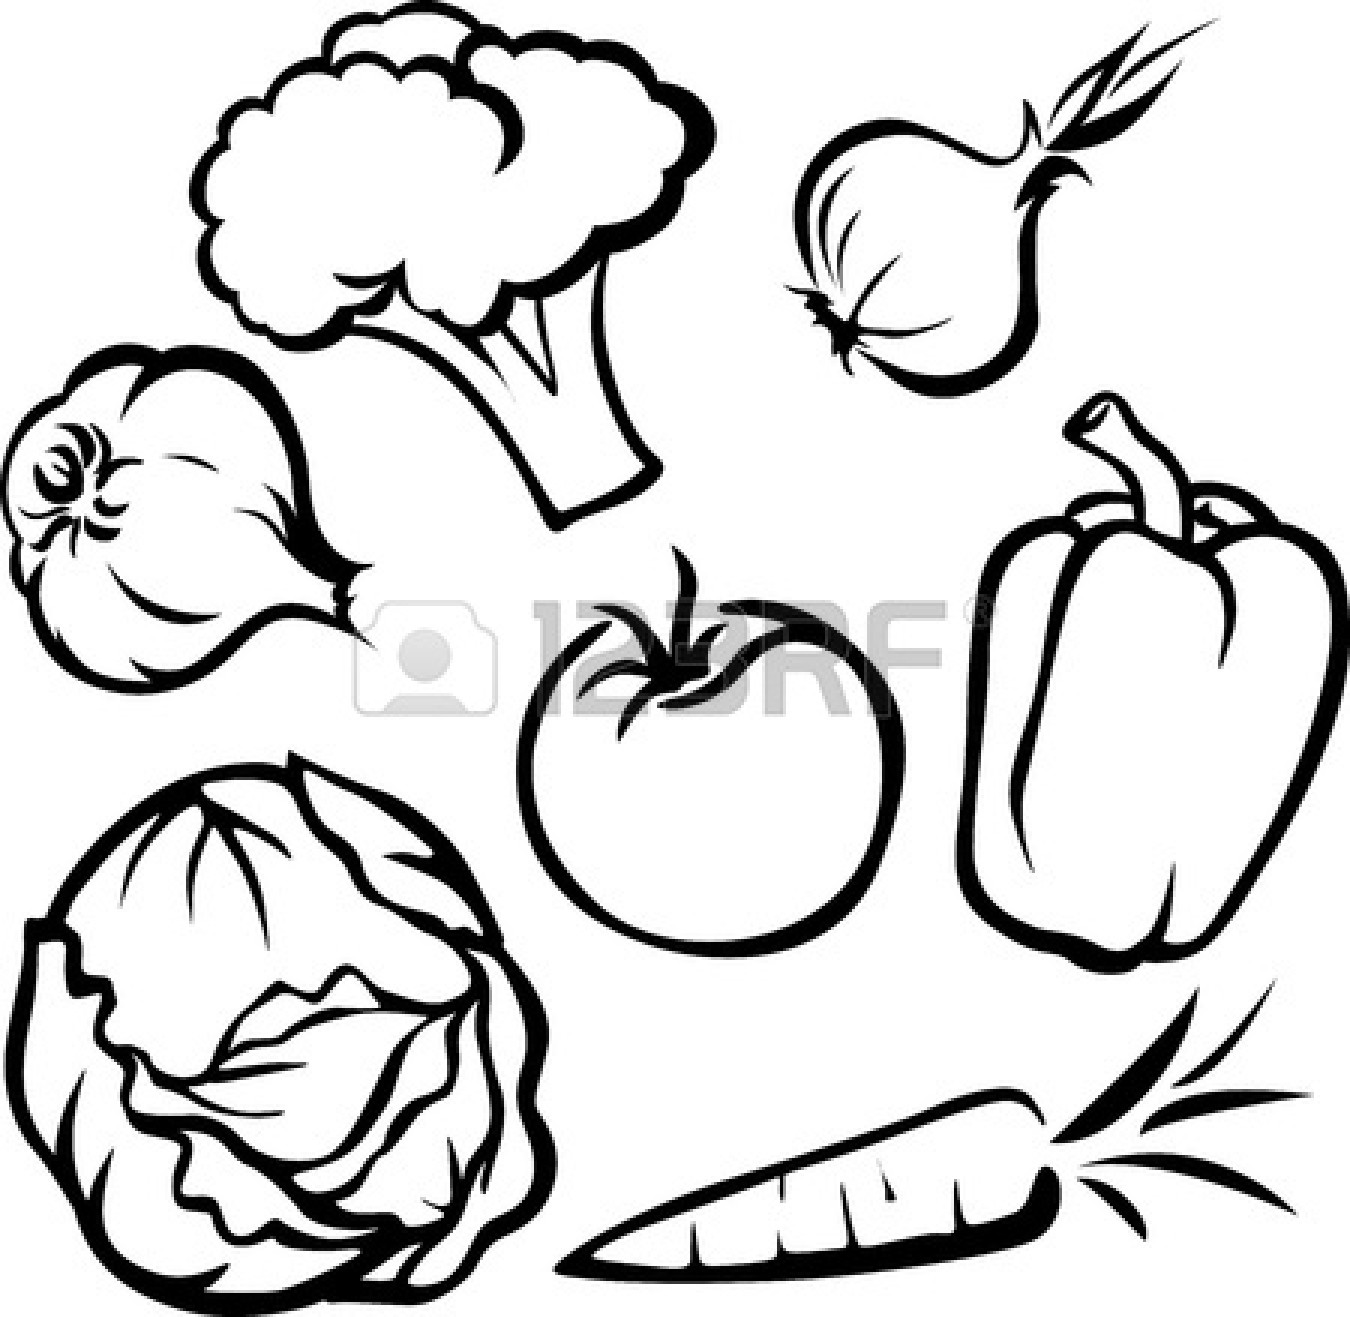 Cute Fruits And Vegetables Clipart   Clipart Panda - Free ...